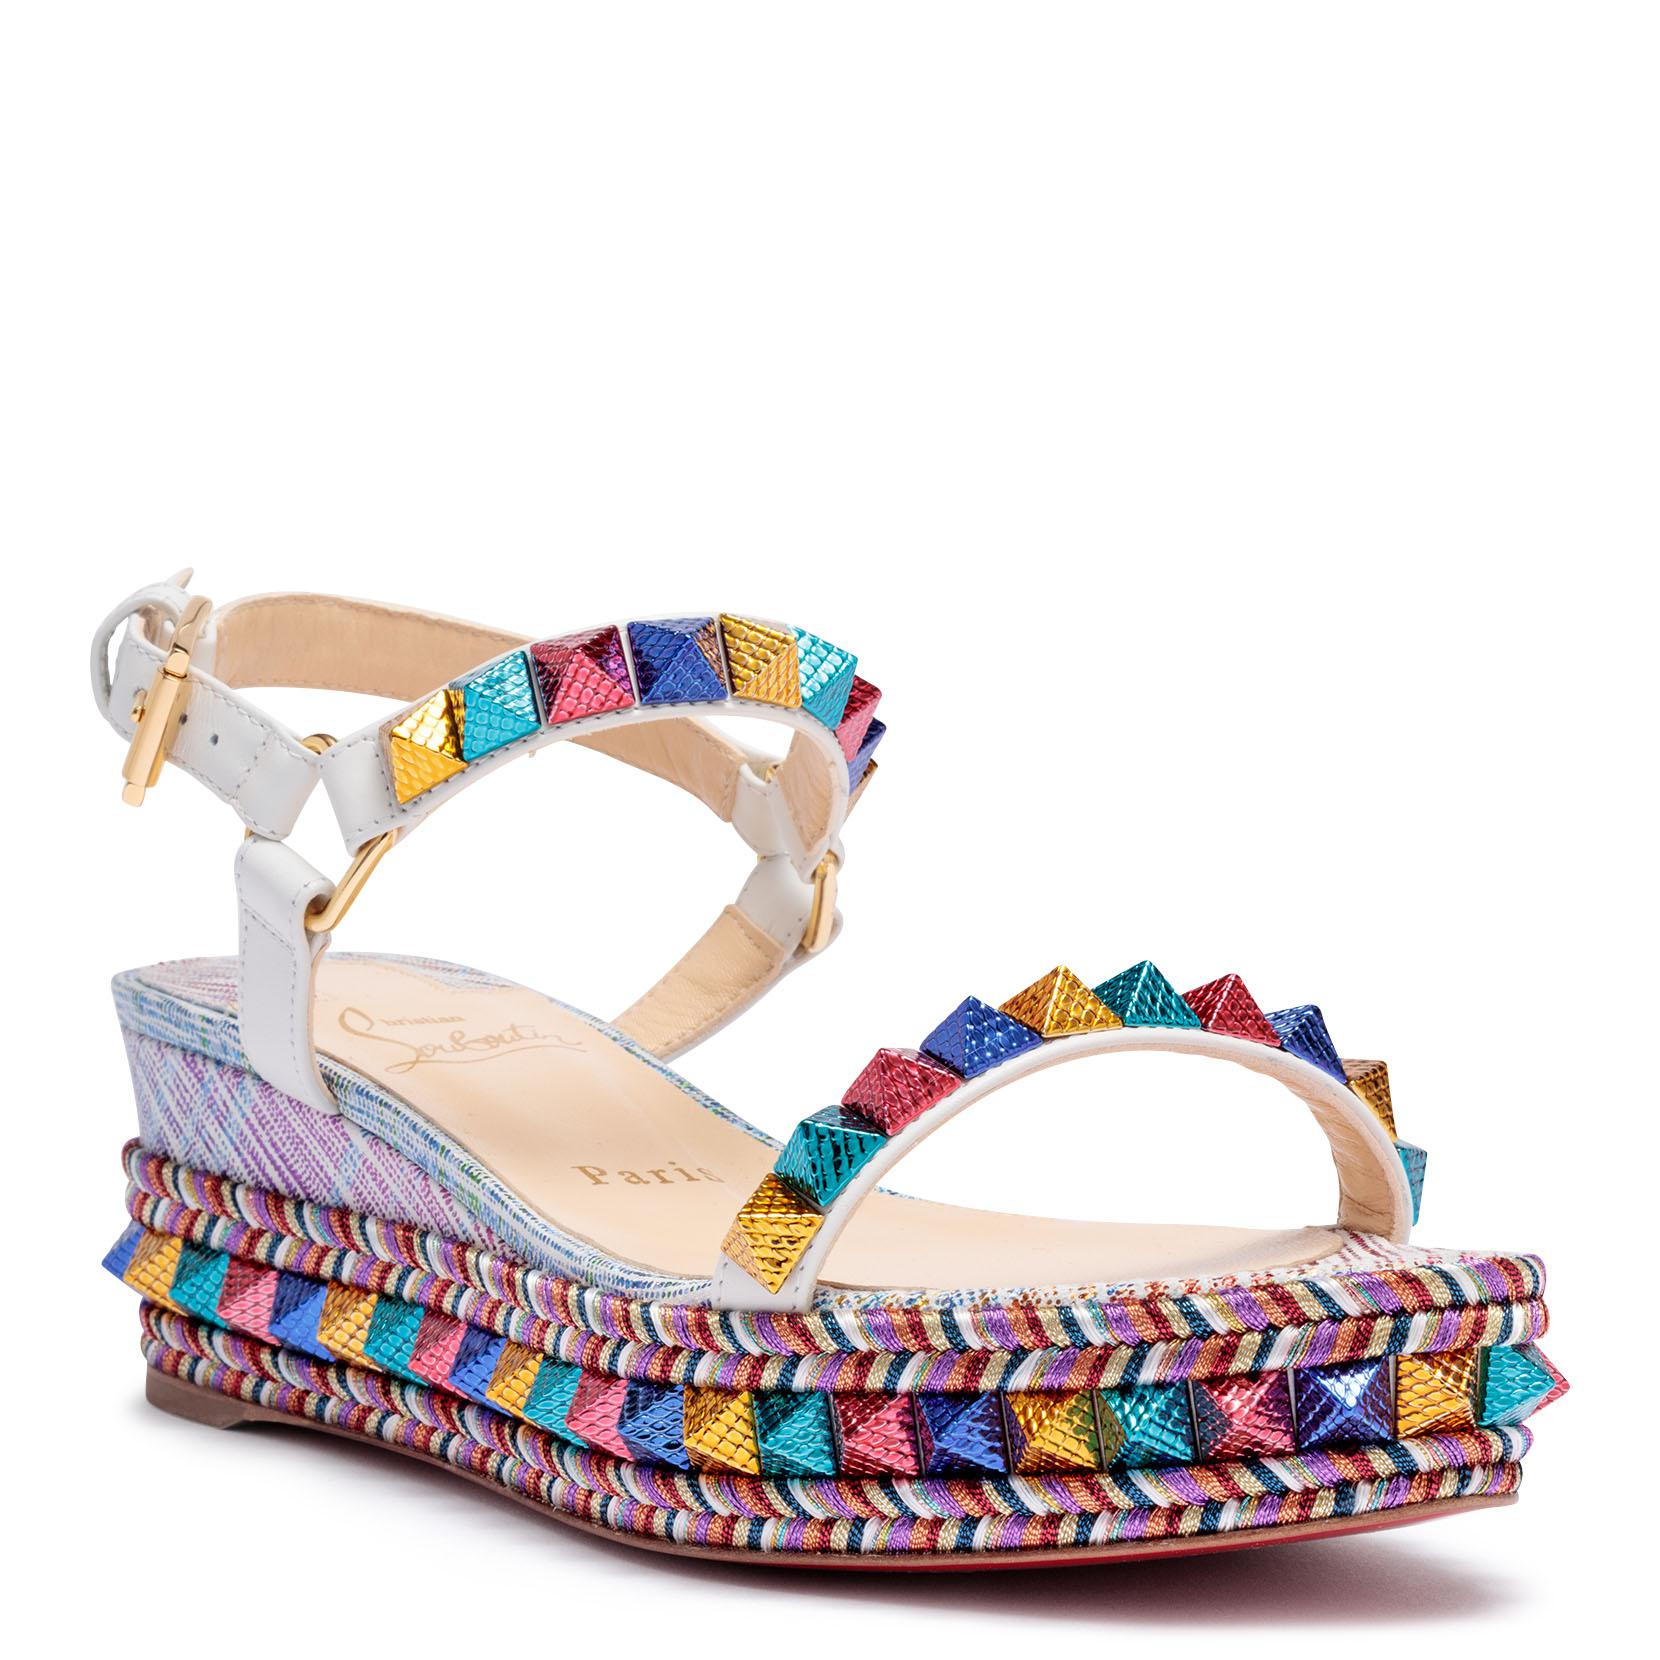 d7c78c7e74b9 Lyst - Christian Louboutin Pyraclou 60 Suede Unicorn Multi Wedges in ...